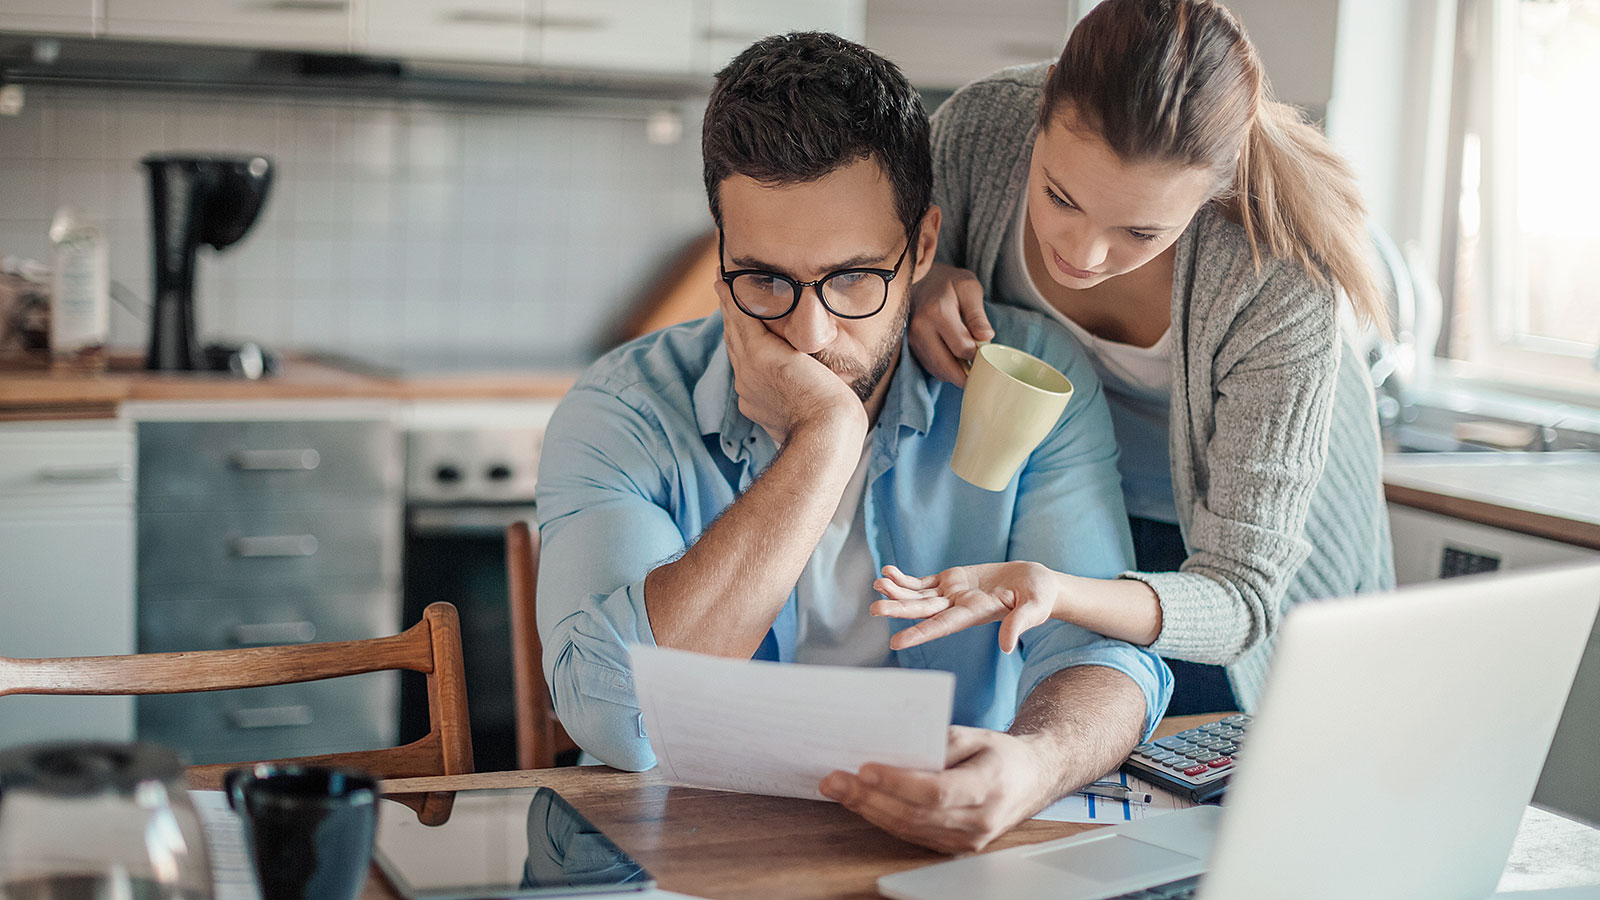 Getting out of debt and staying out of debt for good